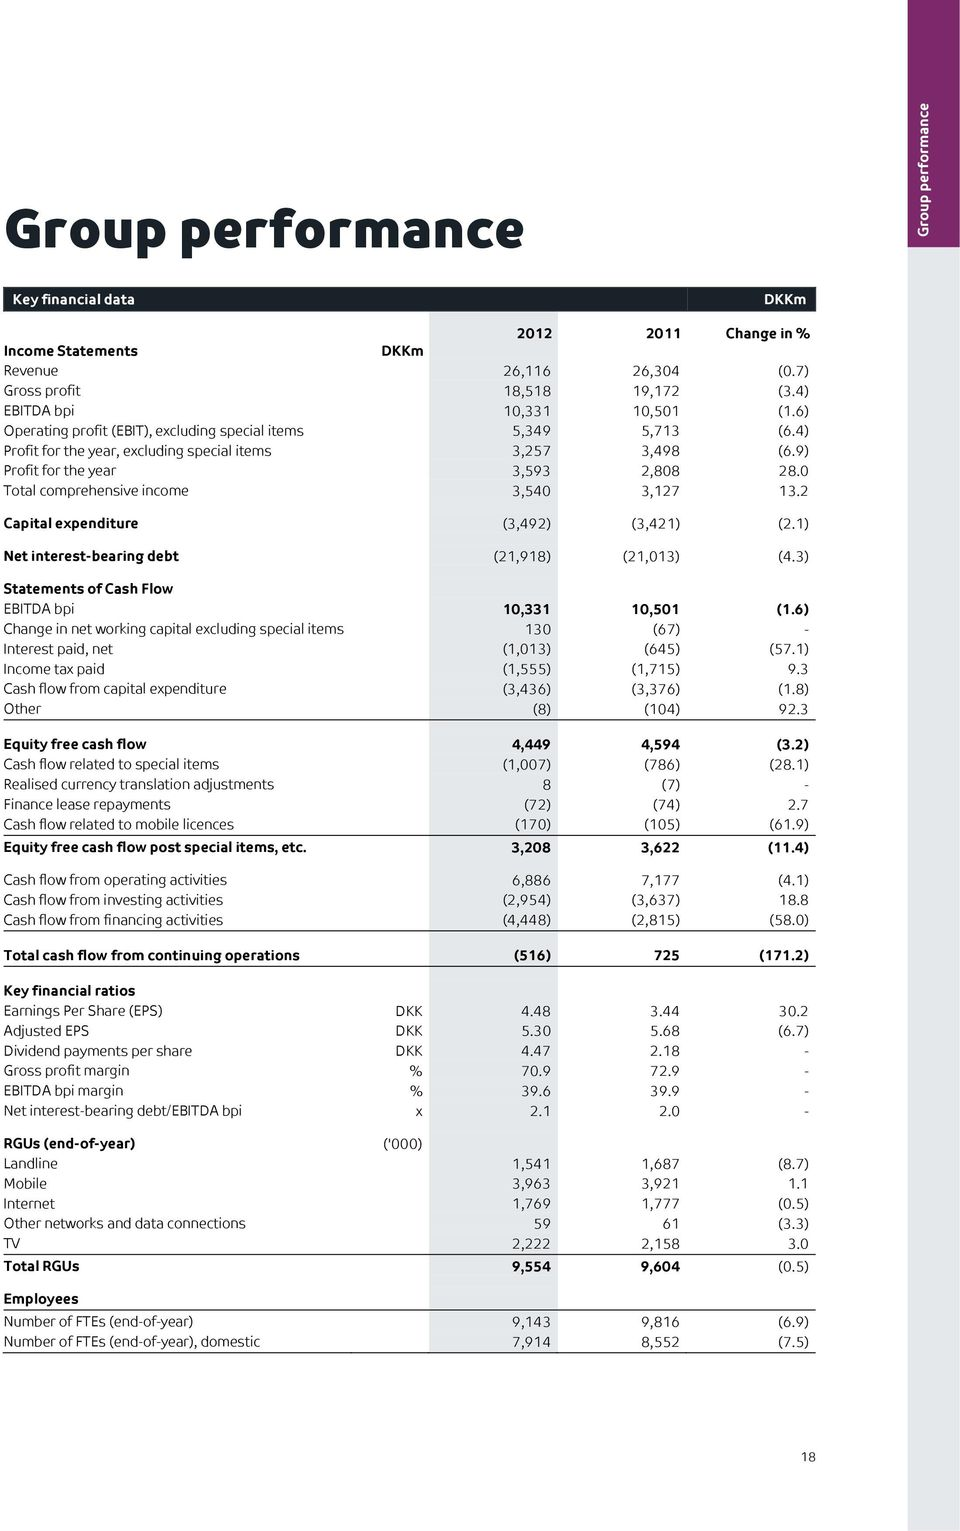 0 Total comprehensive income 3,540 3,127 13.2 Capital expenditure (3,492) (3,421) (2.1) Net interest-bearing debt (21,918) (21,013) (4.3) Statements of Cash Flow EBITDA bpi 10,331 10,501 (1.